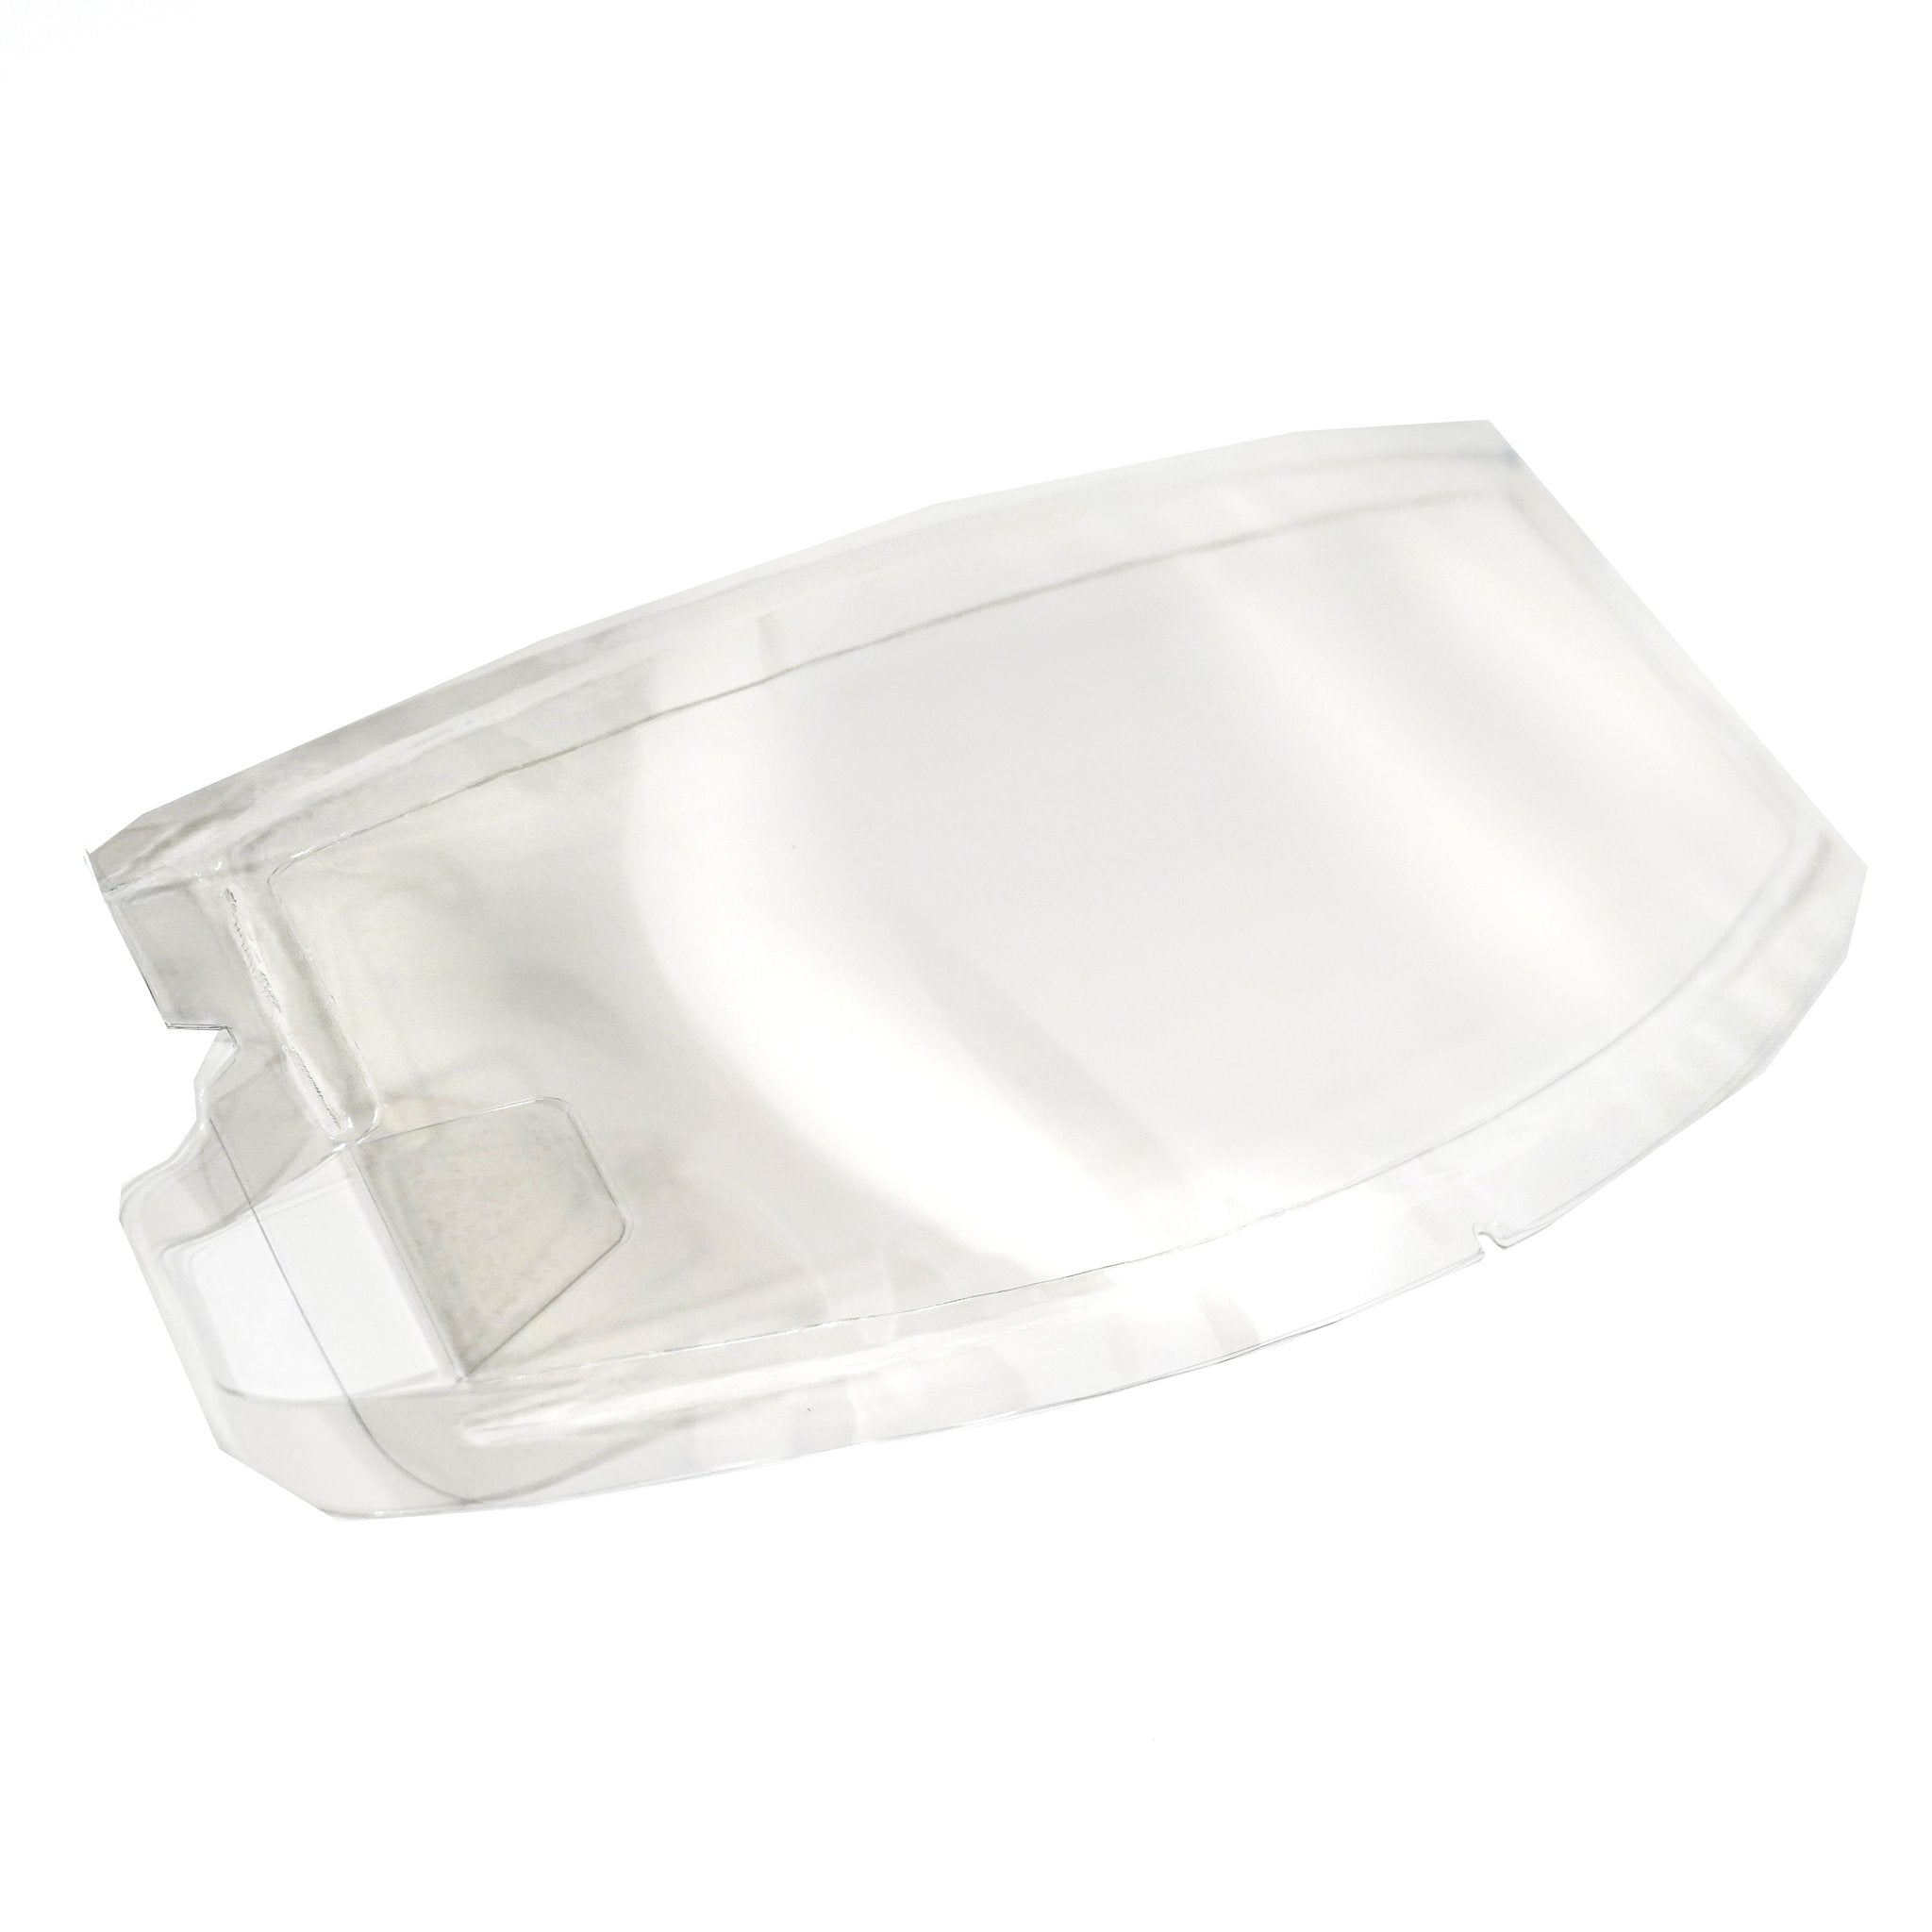 Nova 3® Lenses - Choice of Inner, Outer, Tear Off, OR Cassette Lenses